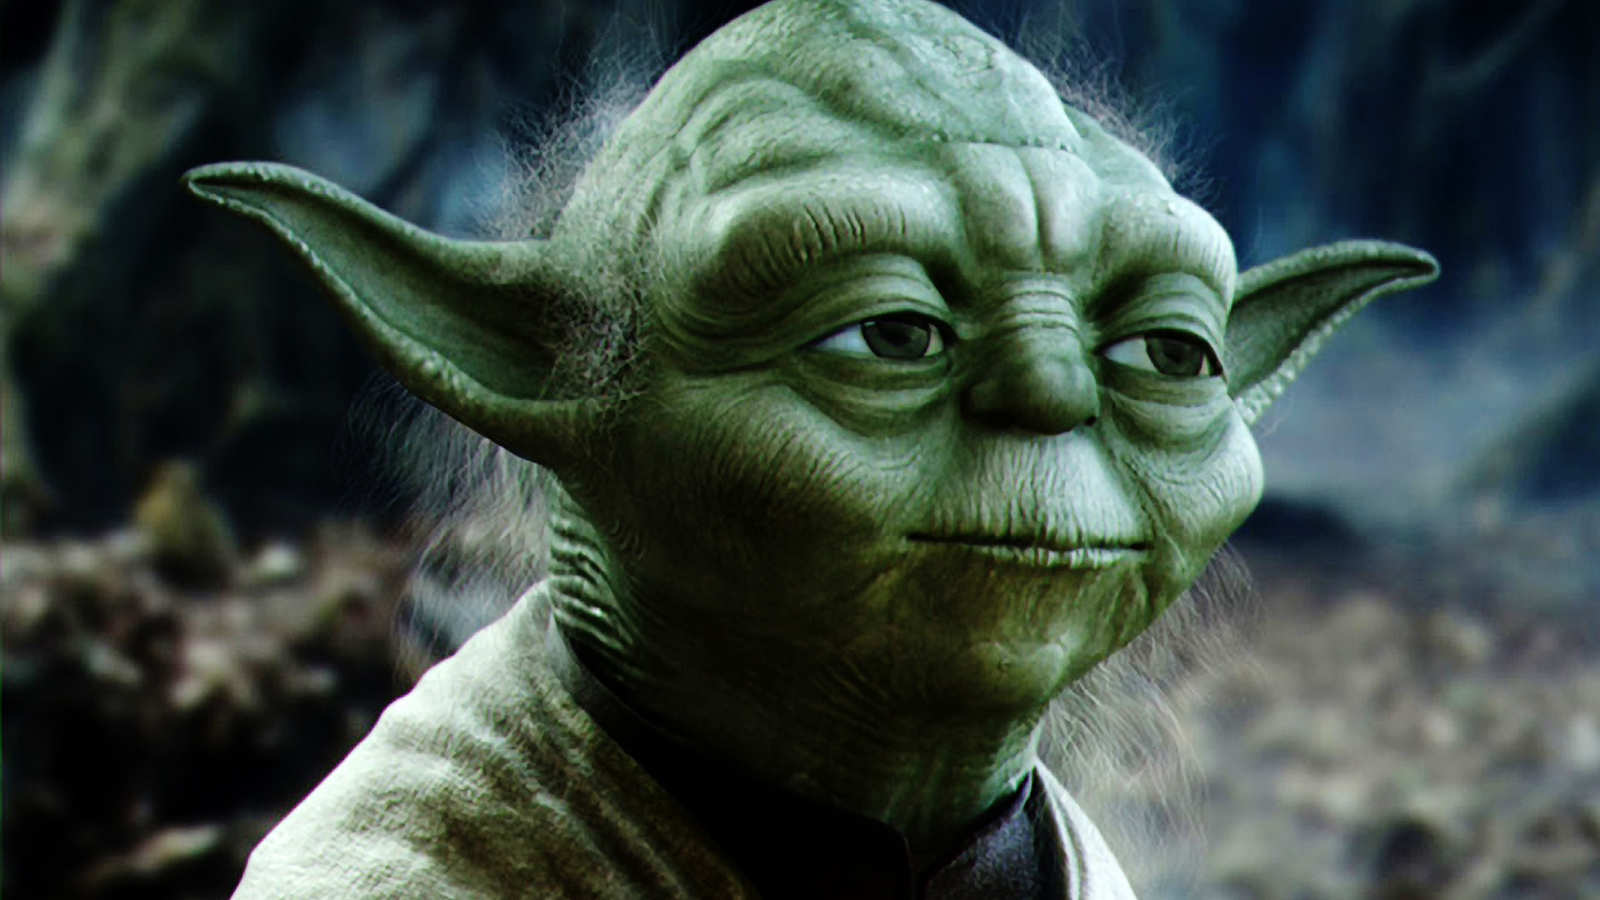 Yoda wallpaper hd wallpapersafari - Star wars quotes wallpaper ...